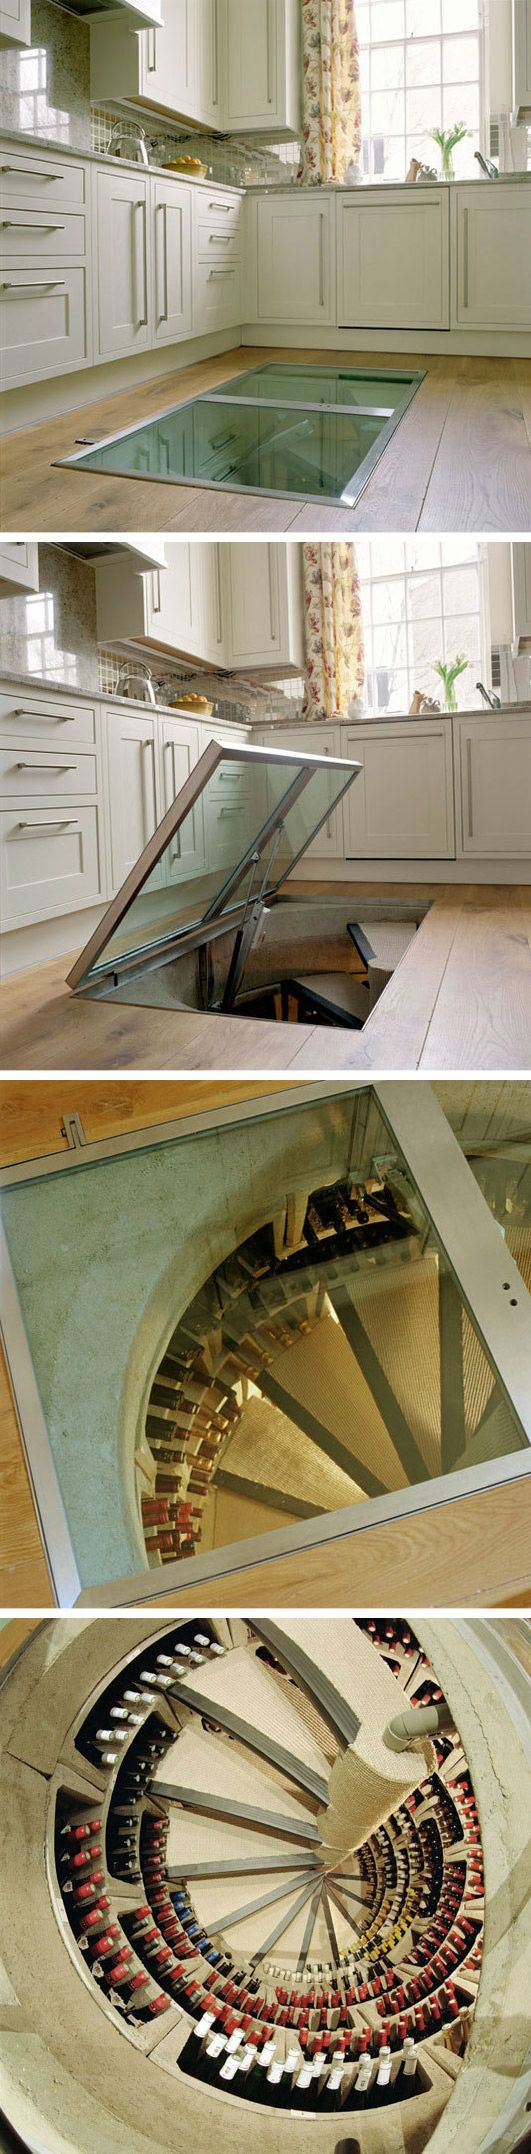 Trapdoor in the Kitchen Floor: Spiral Wine Cellars